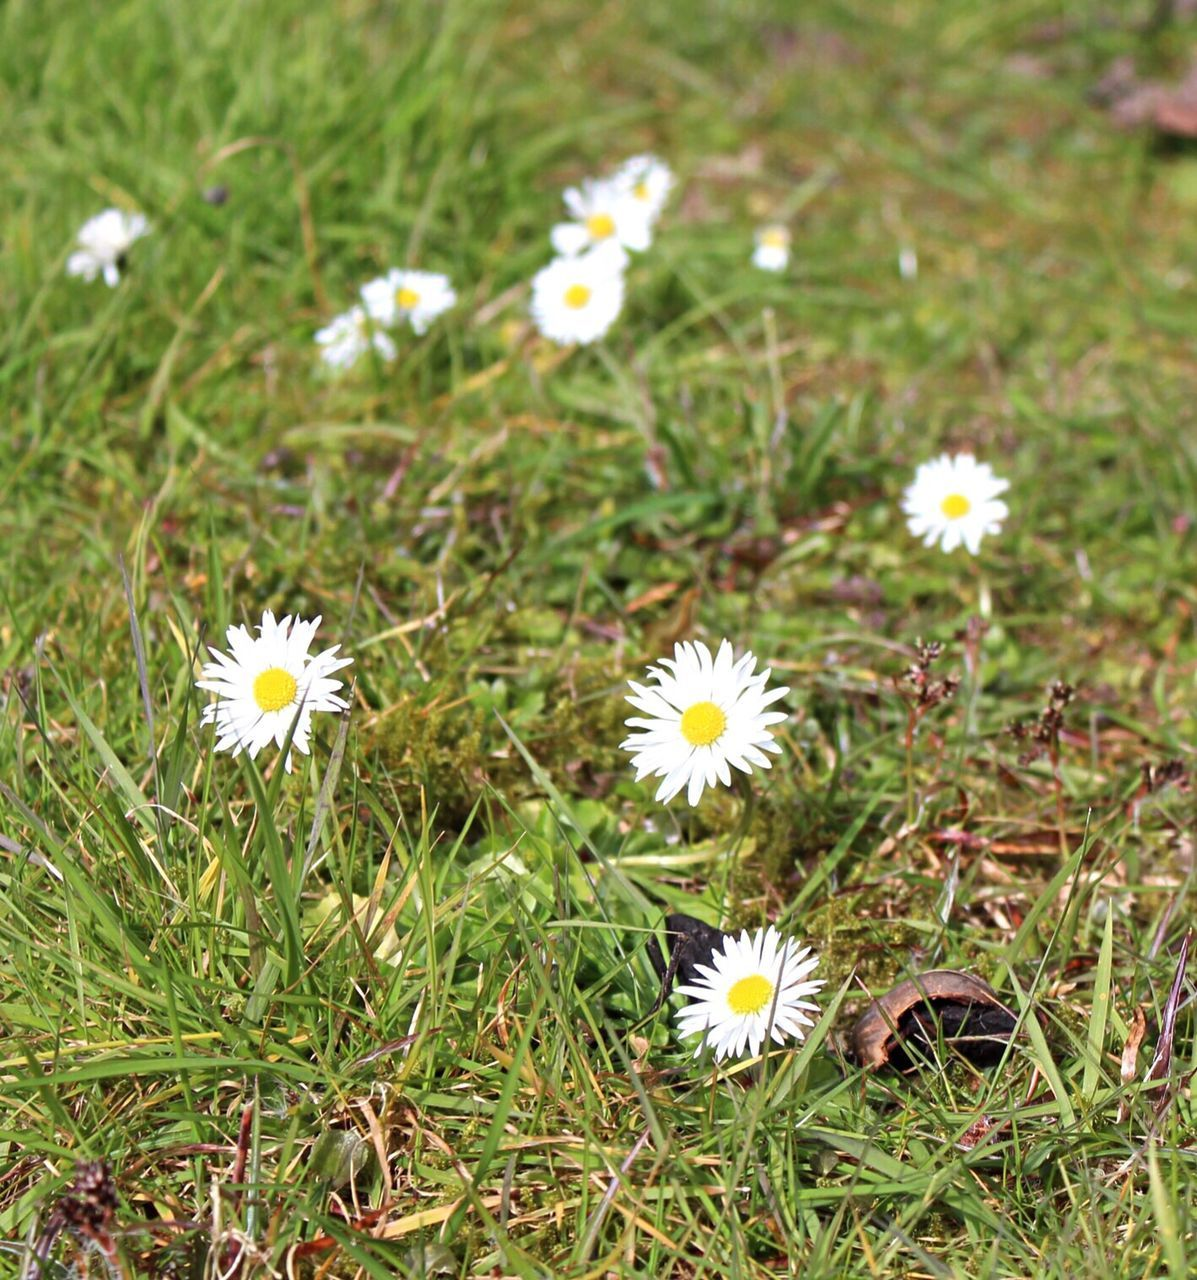 CLOSE-UP OF FLOWERS BLOOMING IN GRASSY FIELD